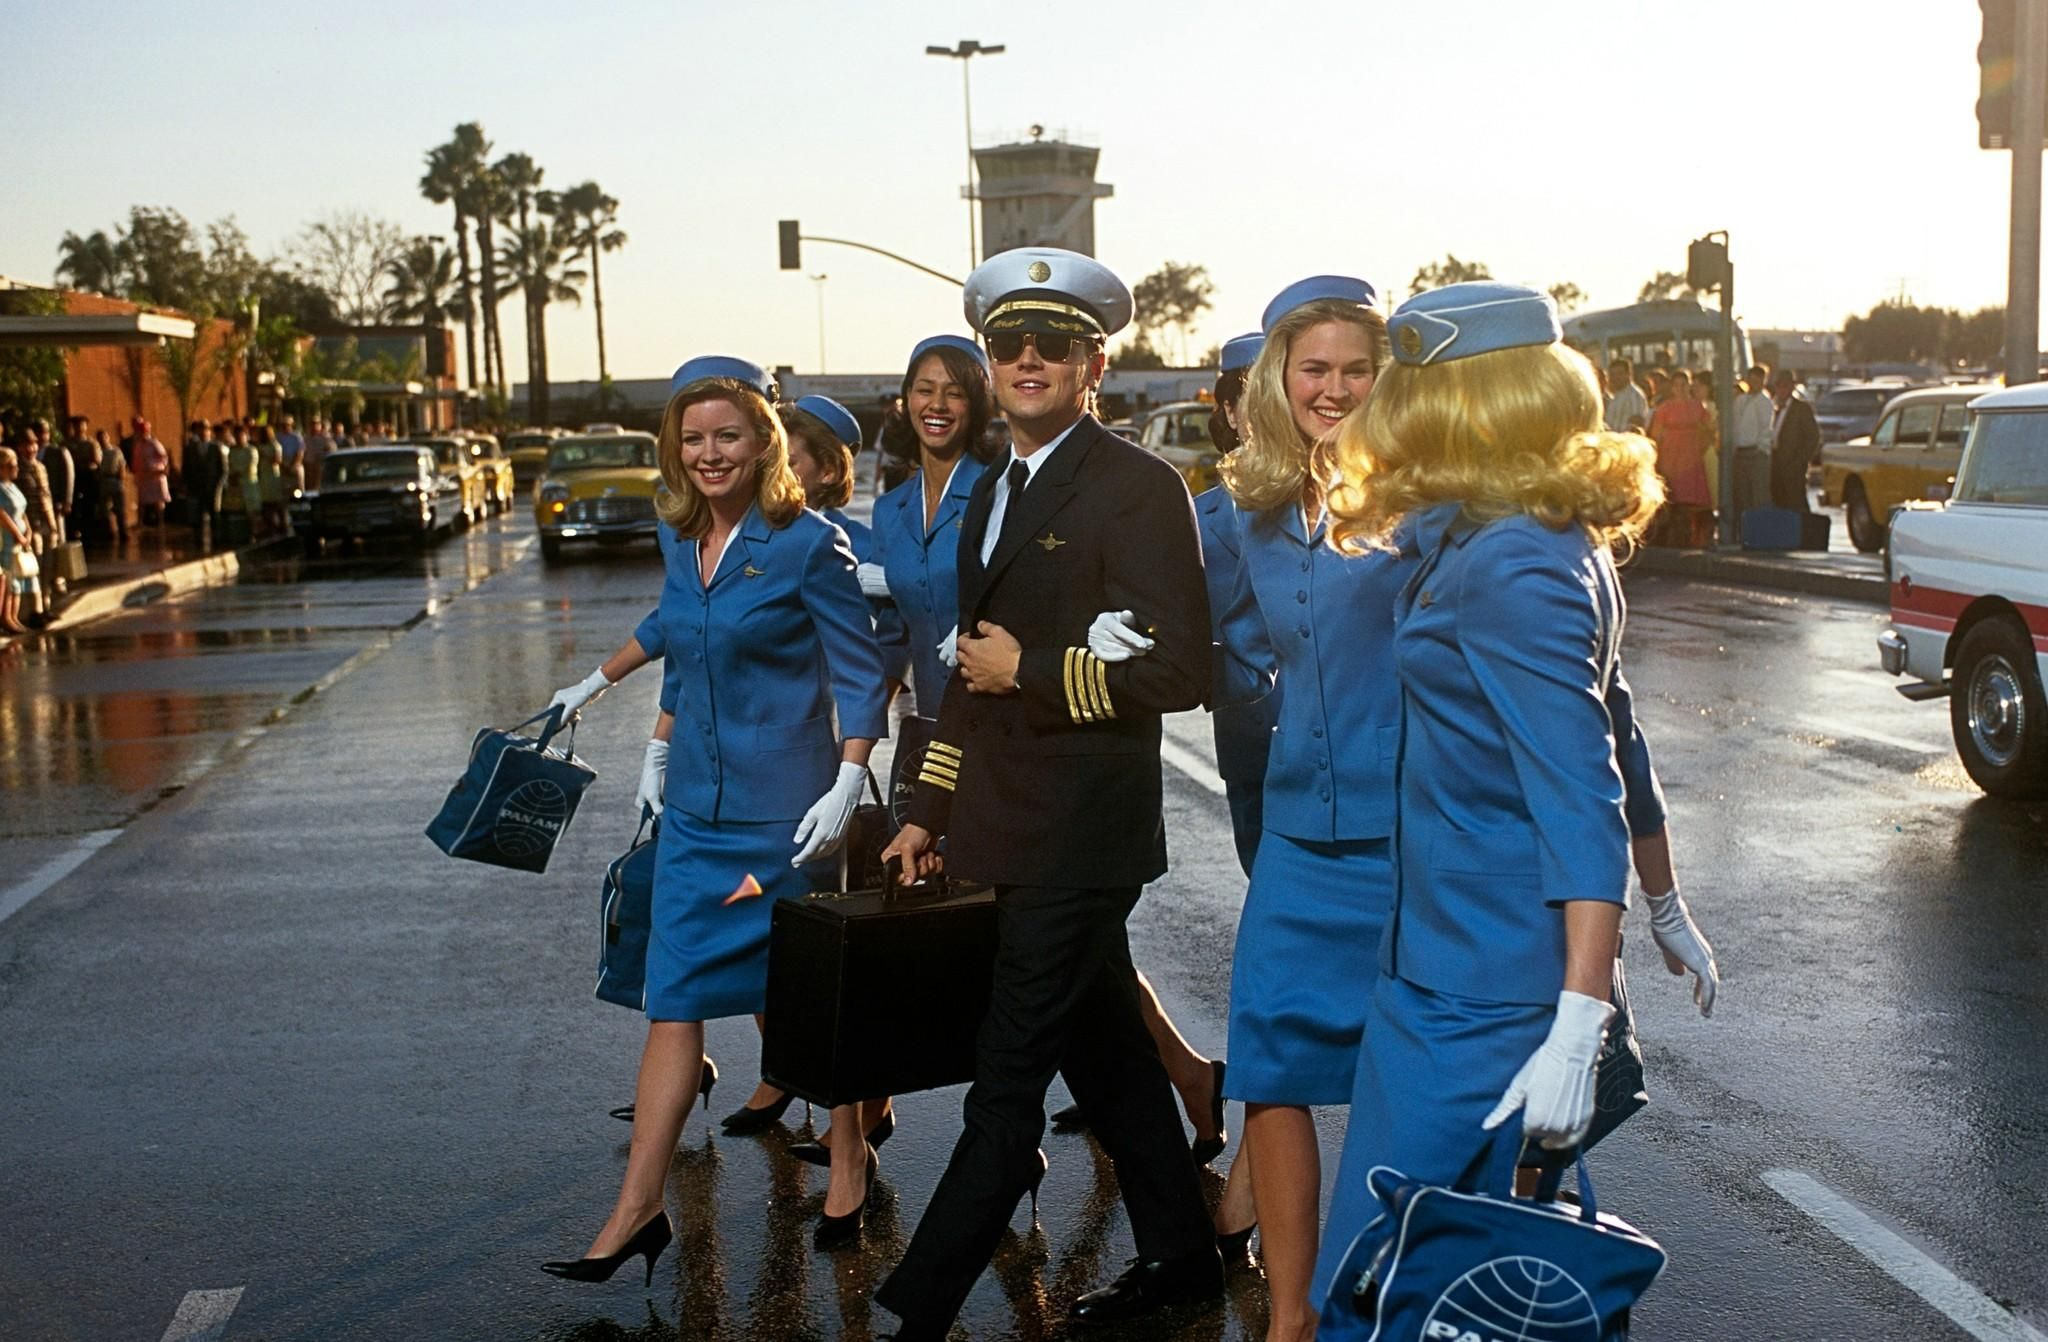 catch me if you can movie summary